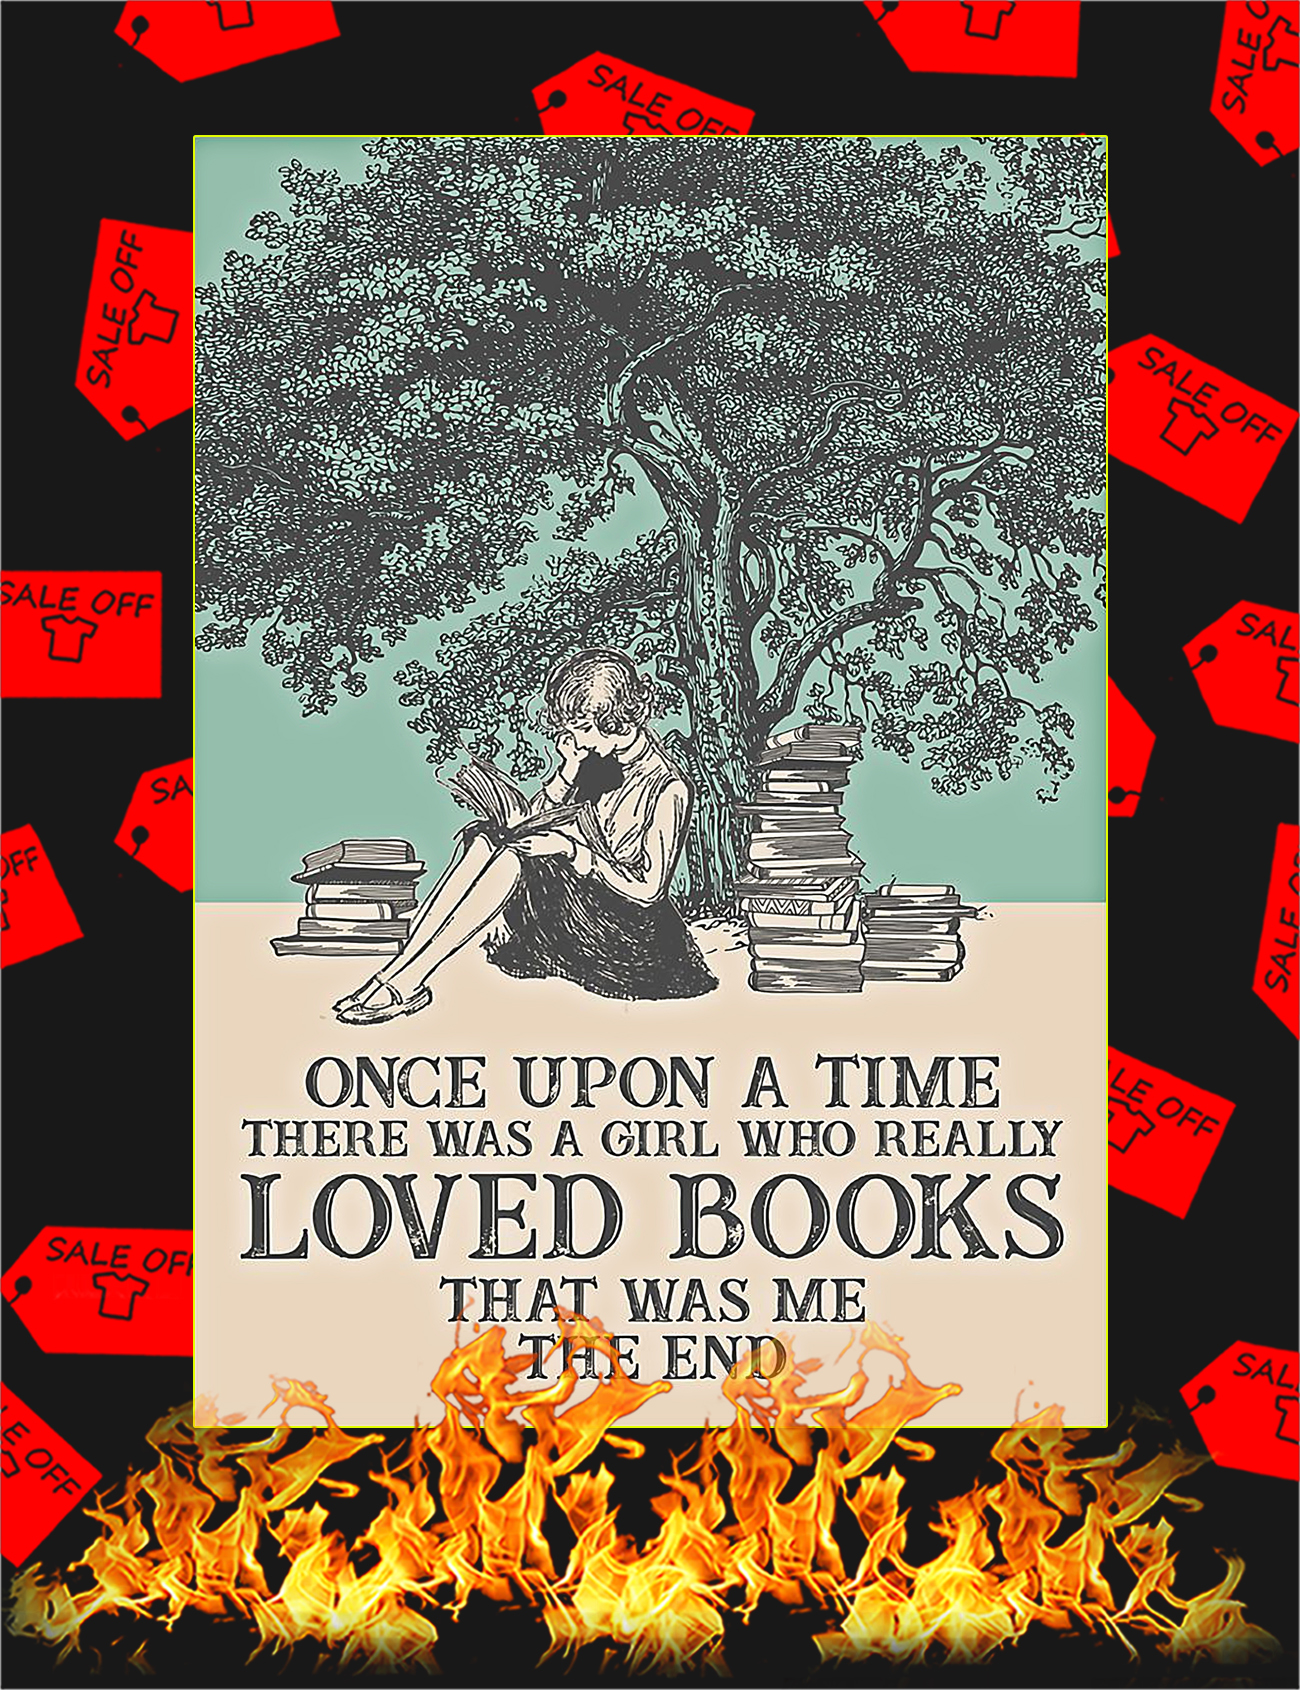 One upon a time there was a girl who really loved books that was me the end poster